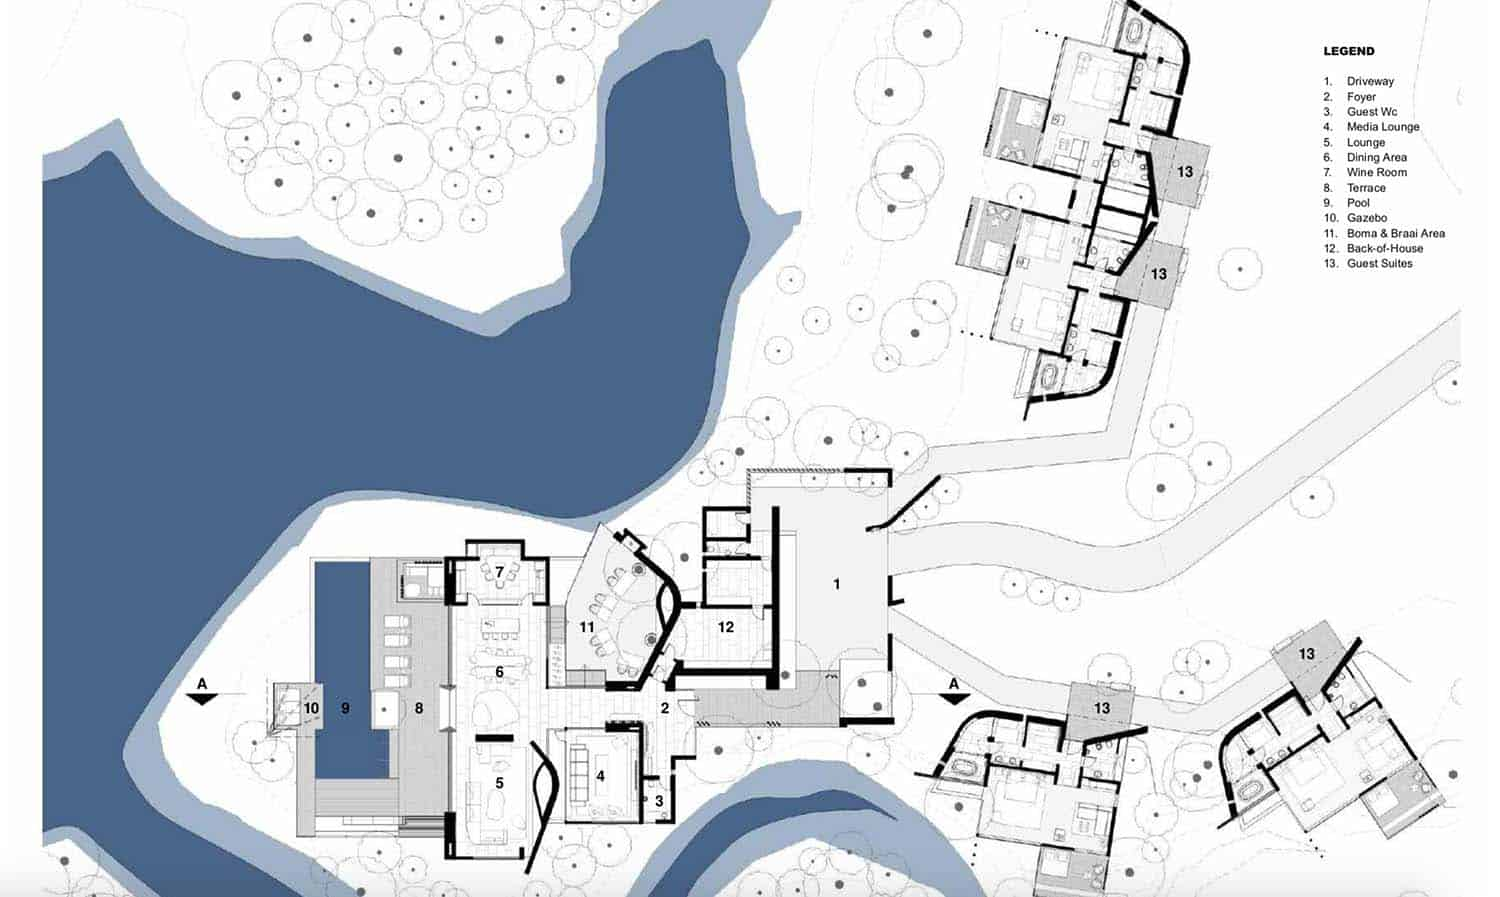 cheetah-plains-game-lodge-floor-plan